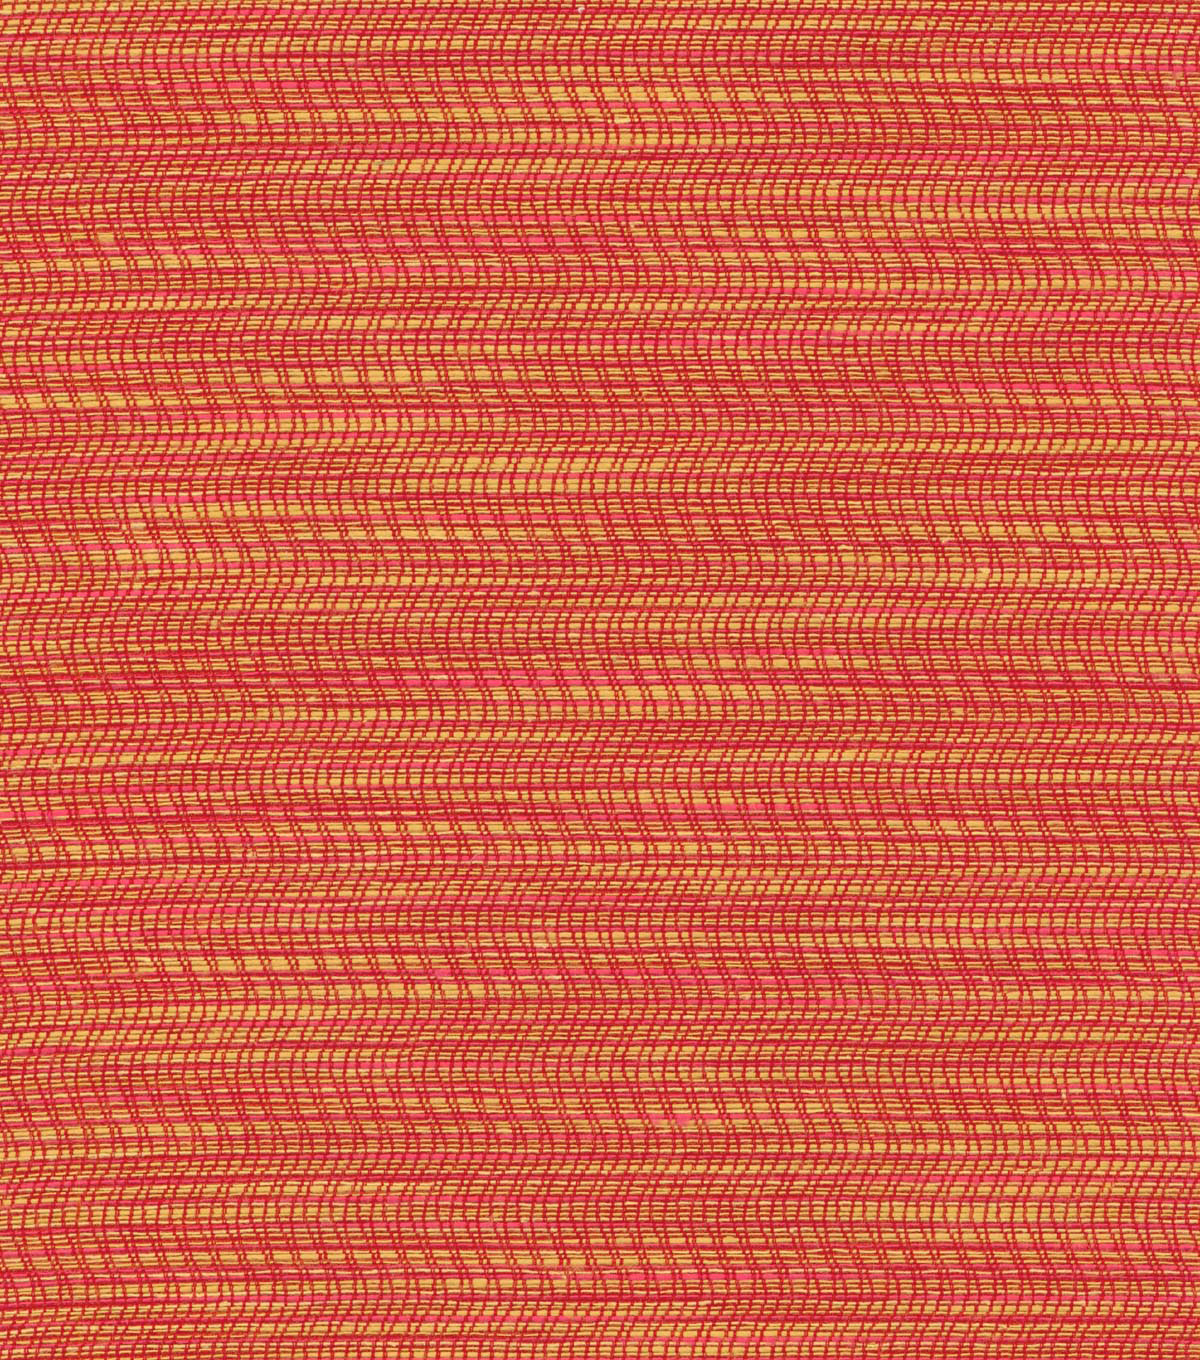 P/K Lifestyles Multi-Purpose Decor Fabric 56\u0022-Shimmy/Cayenne